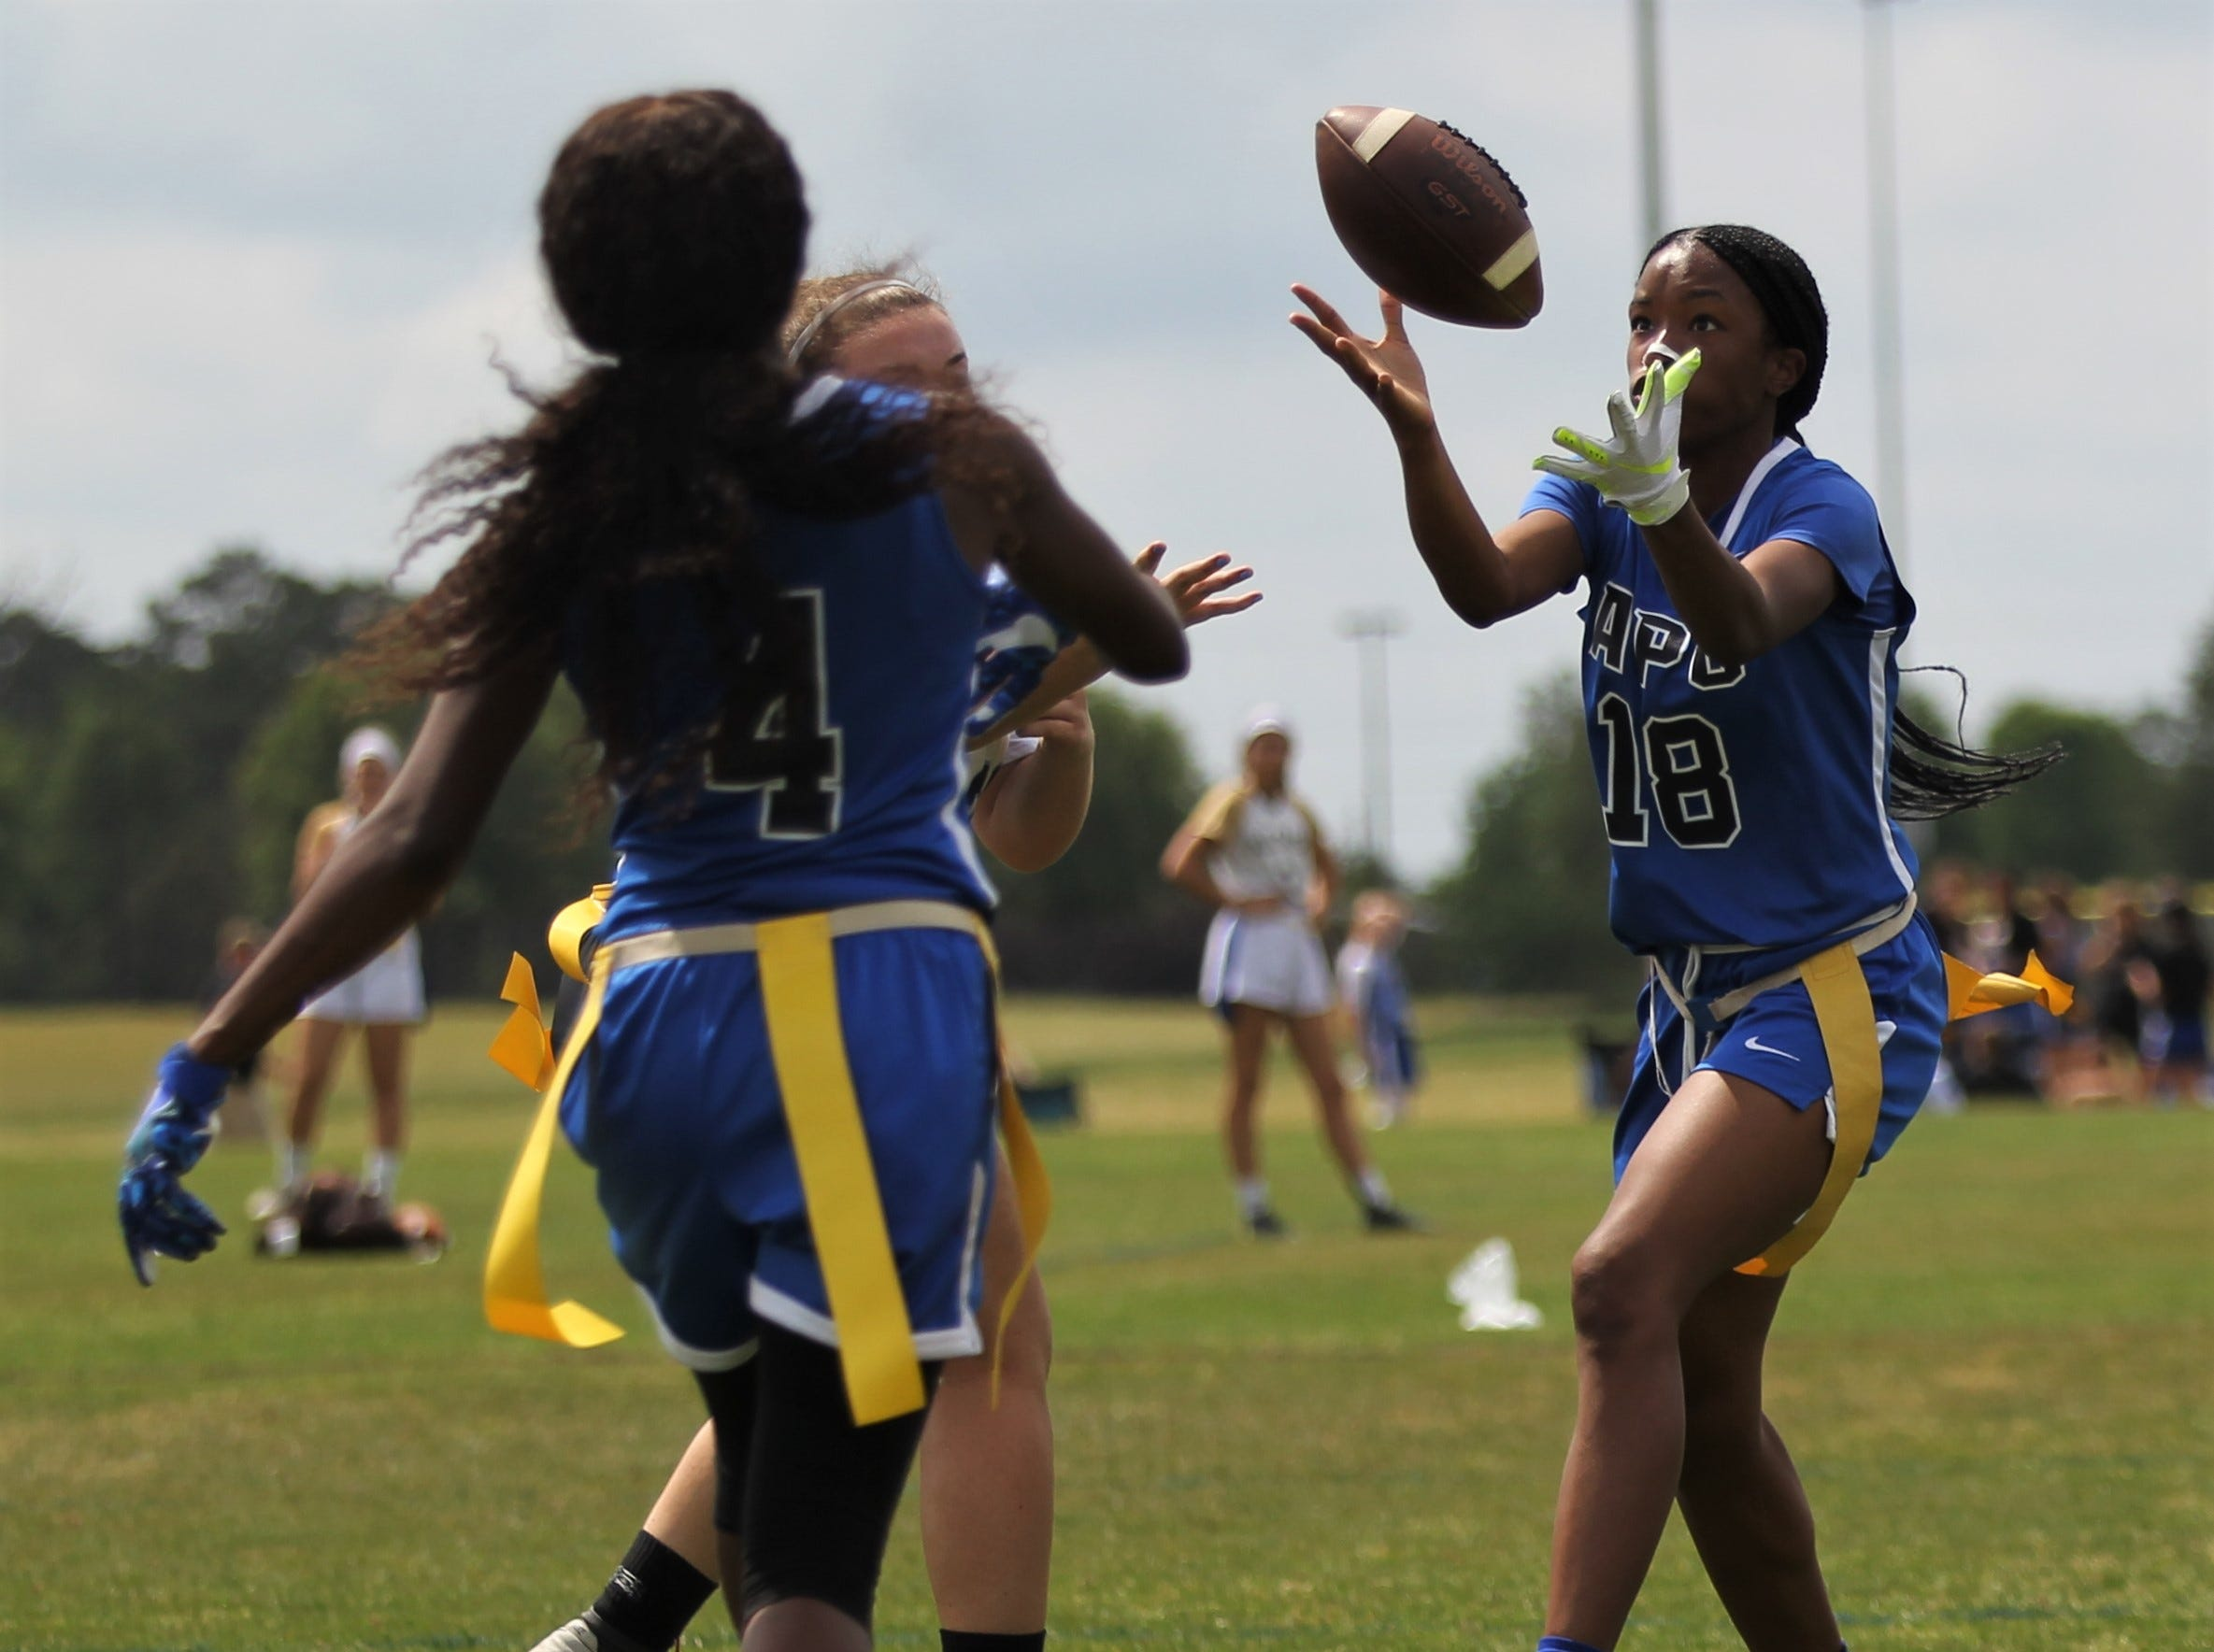 Godby's Giselle Jones record an interception in the 2019 Capital City Classic flag football tournament at the FSU Rec SportsPlex on April 6, 2019.